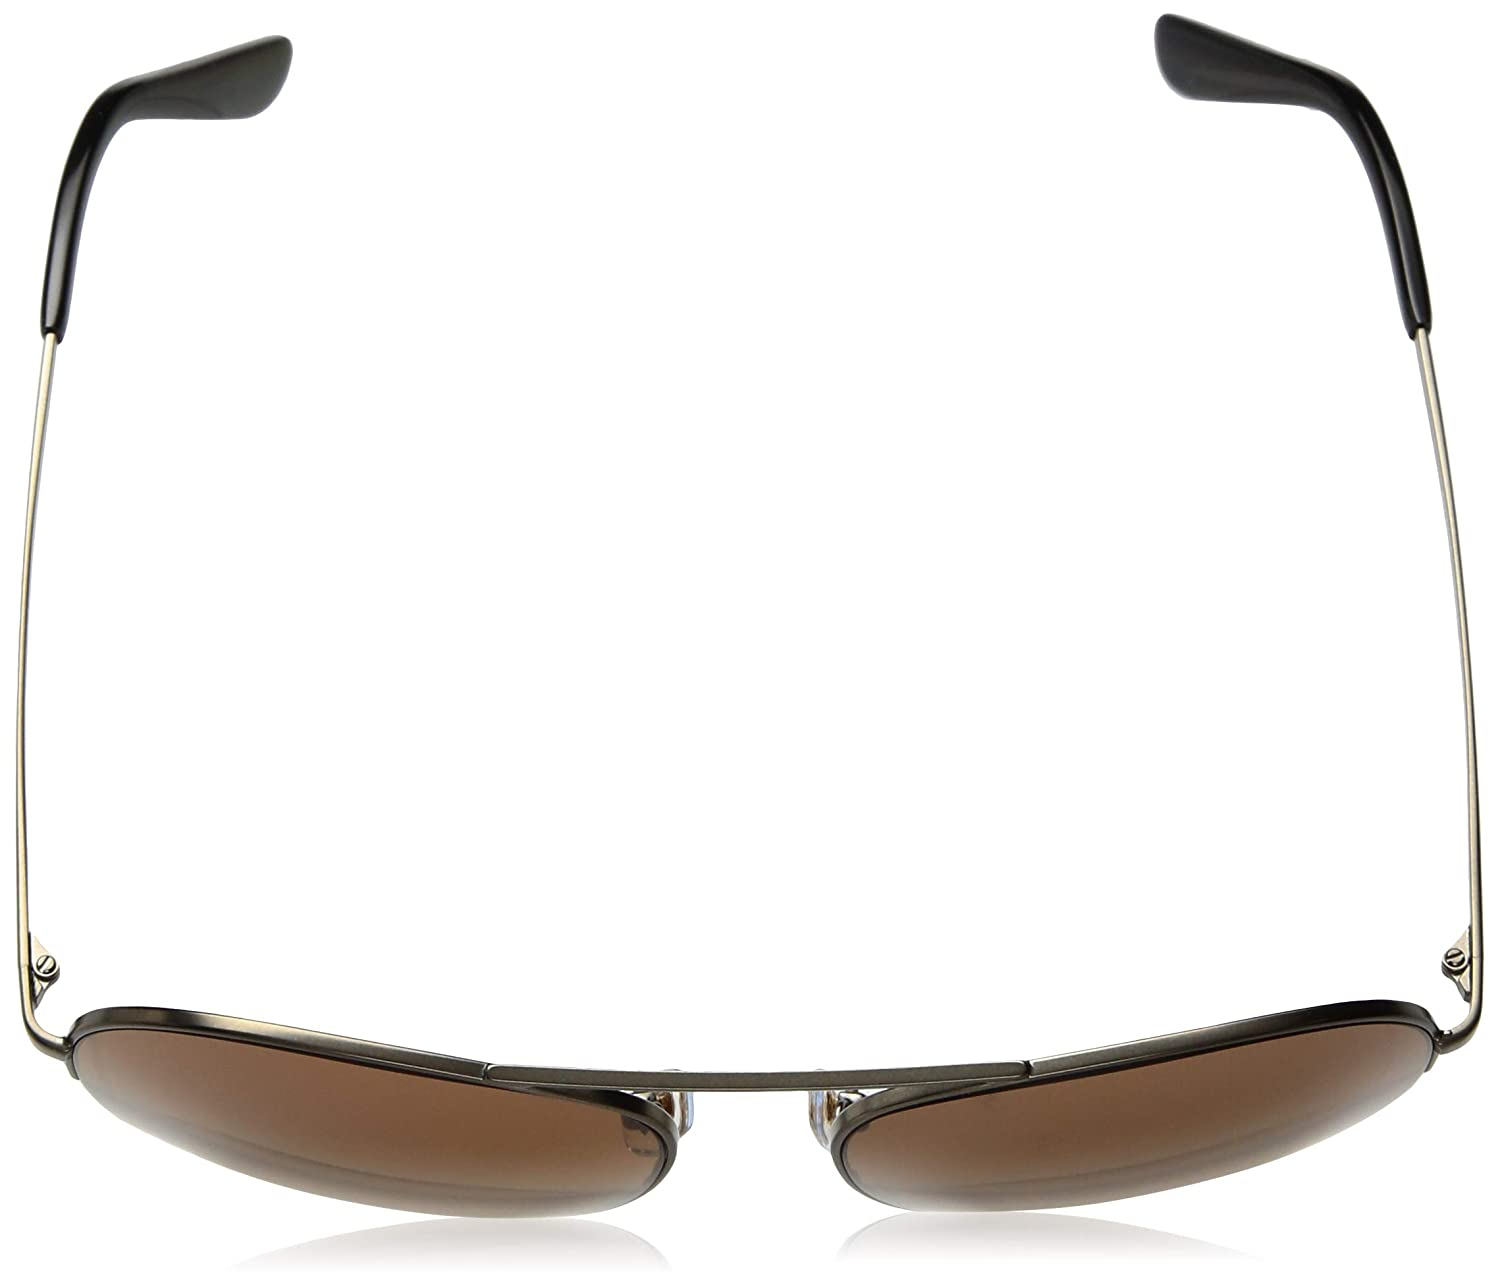 Amazon.com: Gafas de sol Donna Karan New York DY 5086 125313 ...